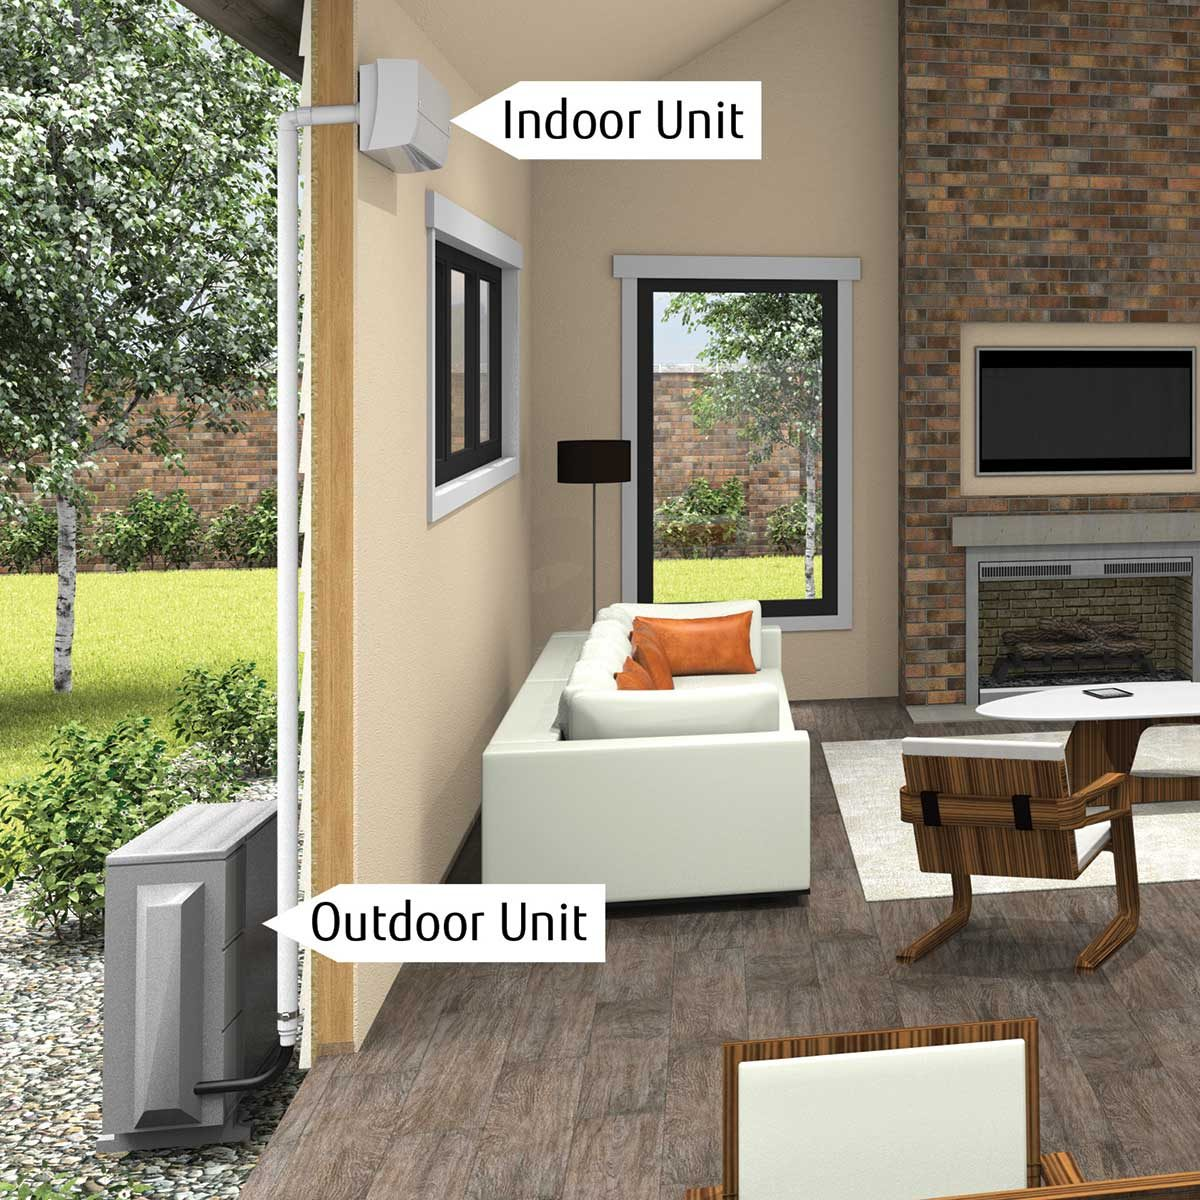 Fujitsu-Indoor-Outdoor-Units